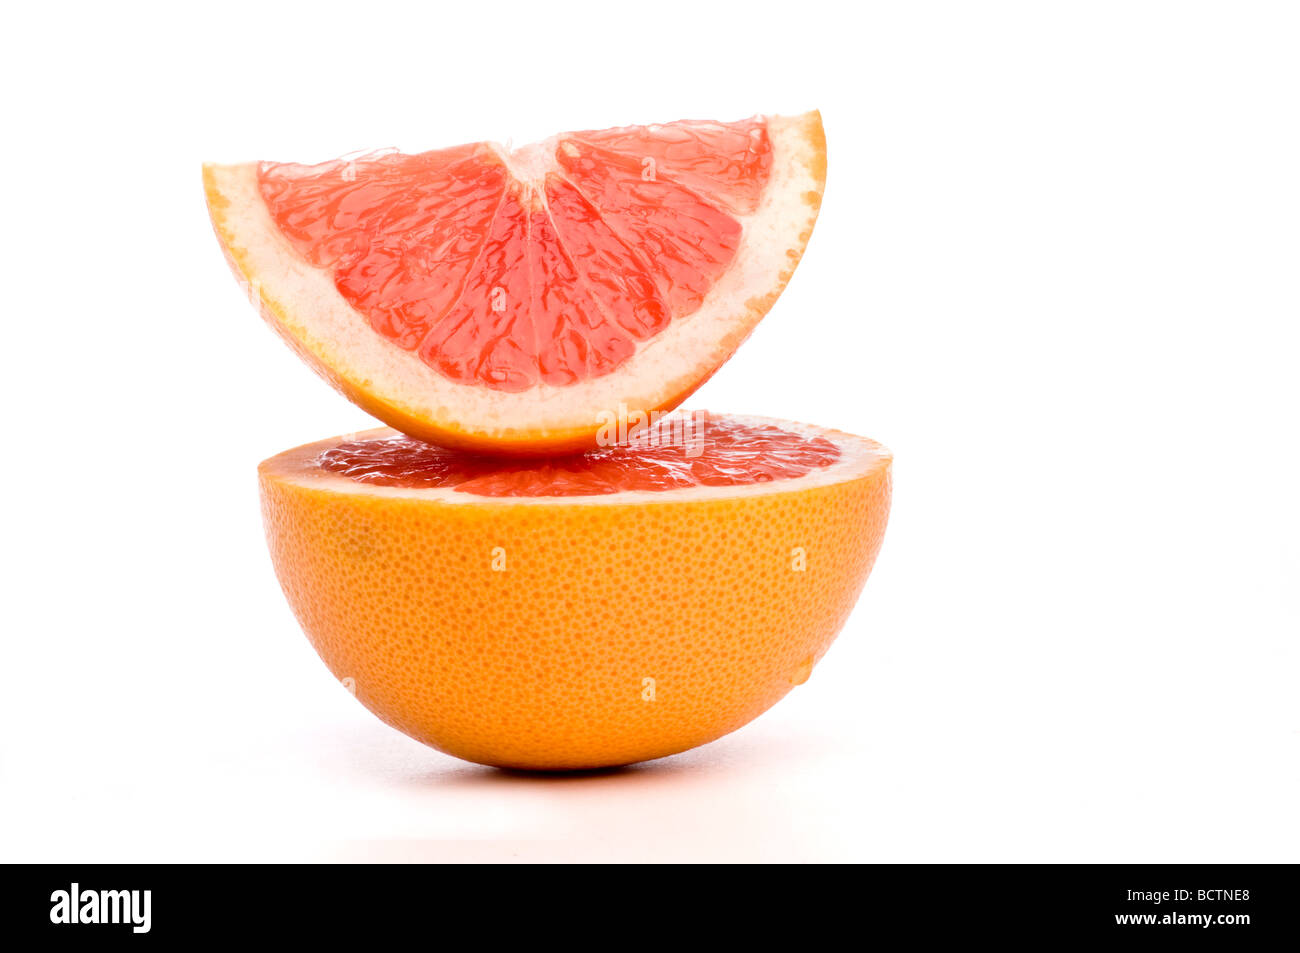 grapefruit slices arranged on top of each other. - Stock Image